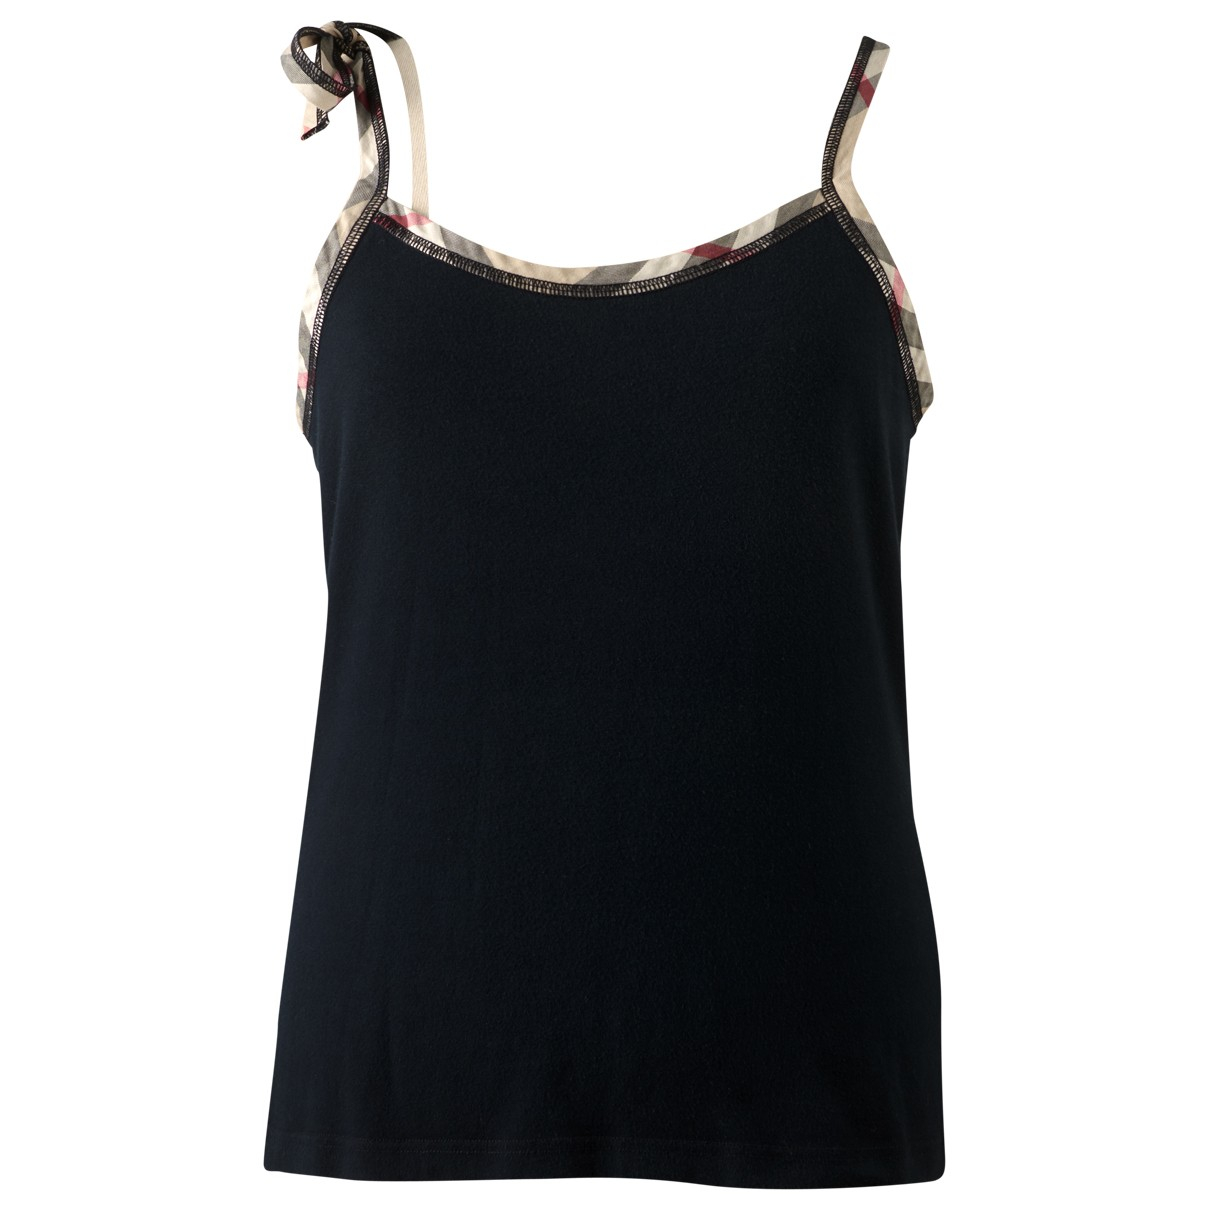 Burberry \N Black Cotton  top for Women M International